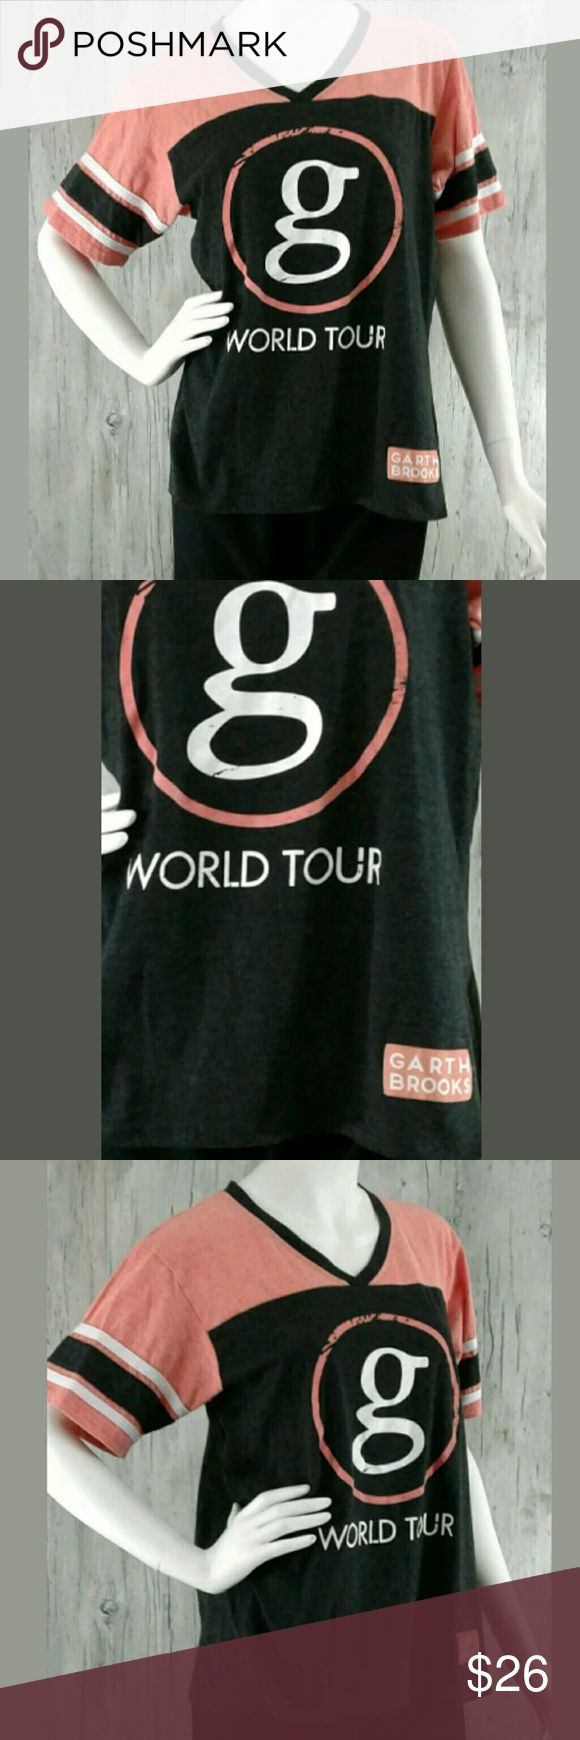 """💕Garth Brooks World Tour Concert Jersey Sz XL Garth Brooks World Tour Concert Jersey Sz XL Short Sleeve V Neck Orange Black White  * Gently Owned ~ Great Condition * Chest 20.5"""" Laying Flat * Sleeve - Short * Length 25"""" (Measurements Are Approximate)   🌞Pet Free / Smoke Free Environment 🎁 Fast Shipping K103 Garth Brooks Tops Tees - Short Sleeve"""